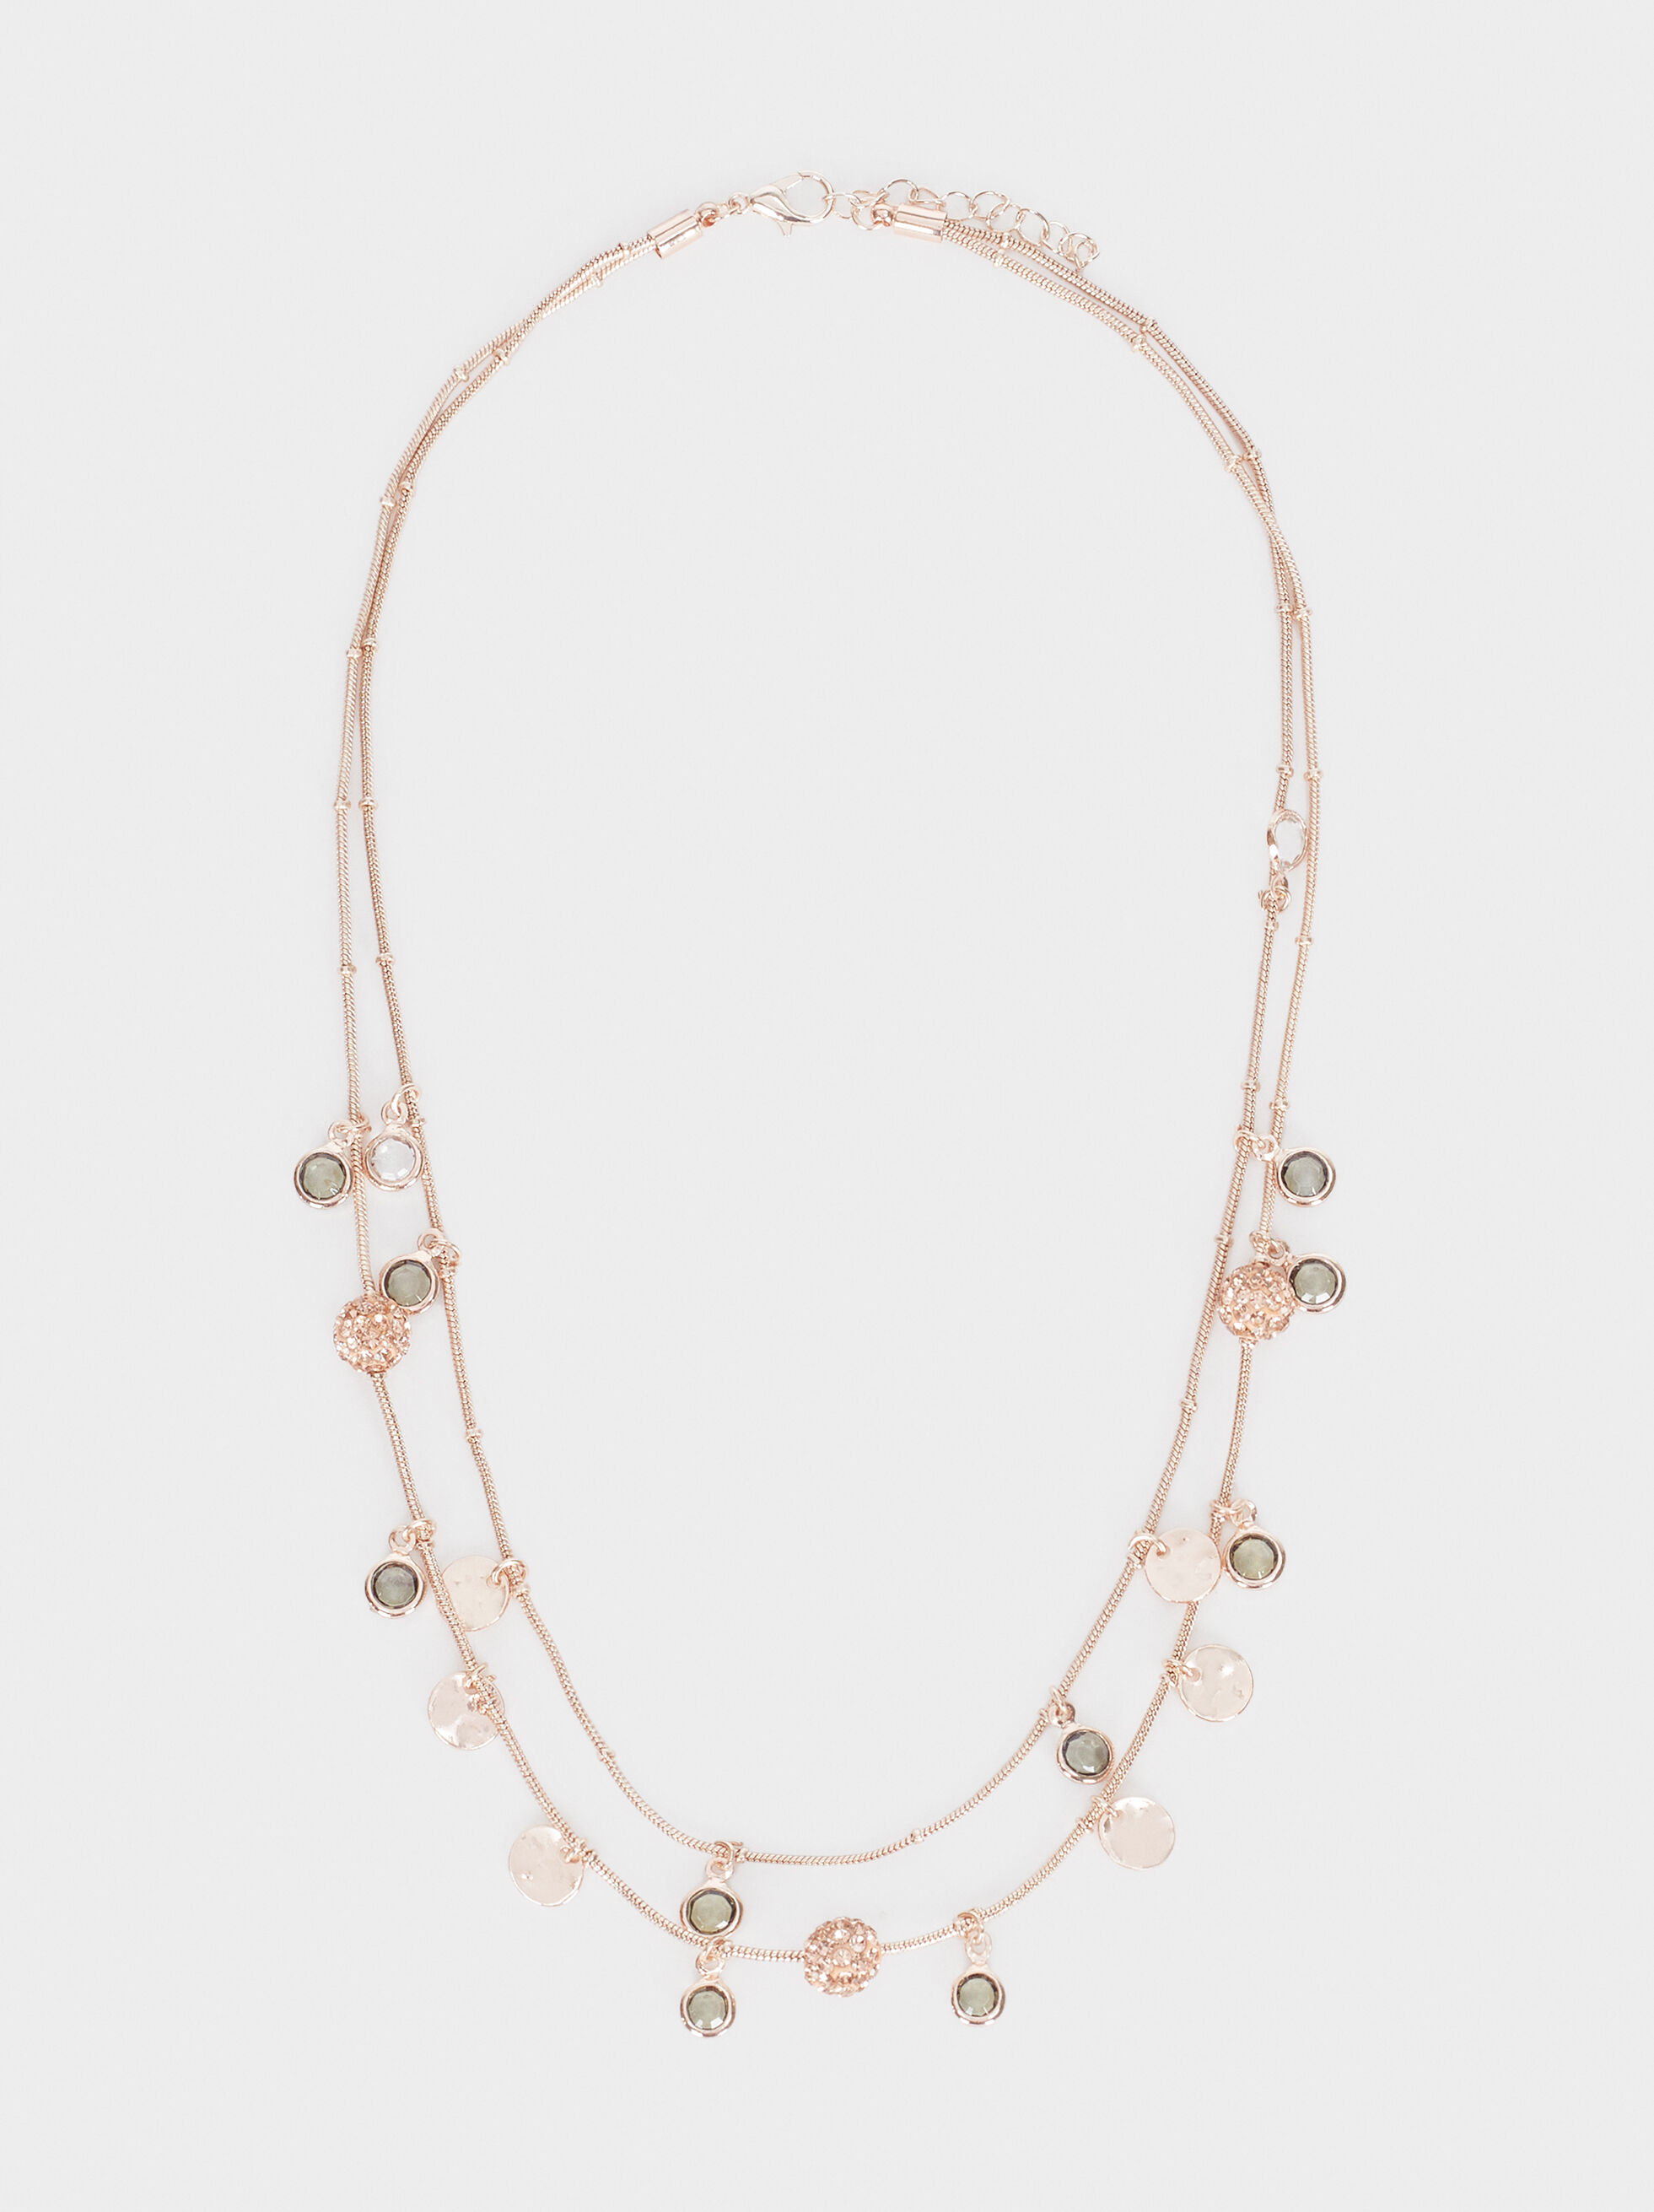 Short Rose Gold Necklace With Coins And Crystals, Orange, hi-res